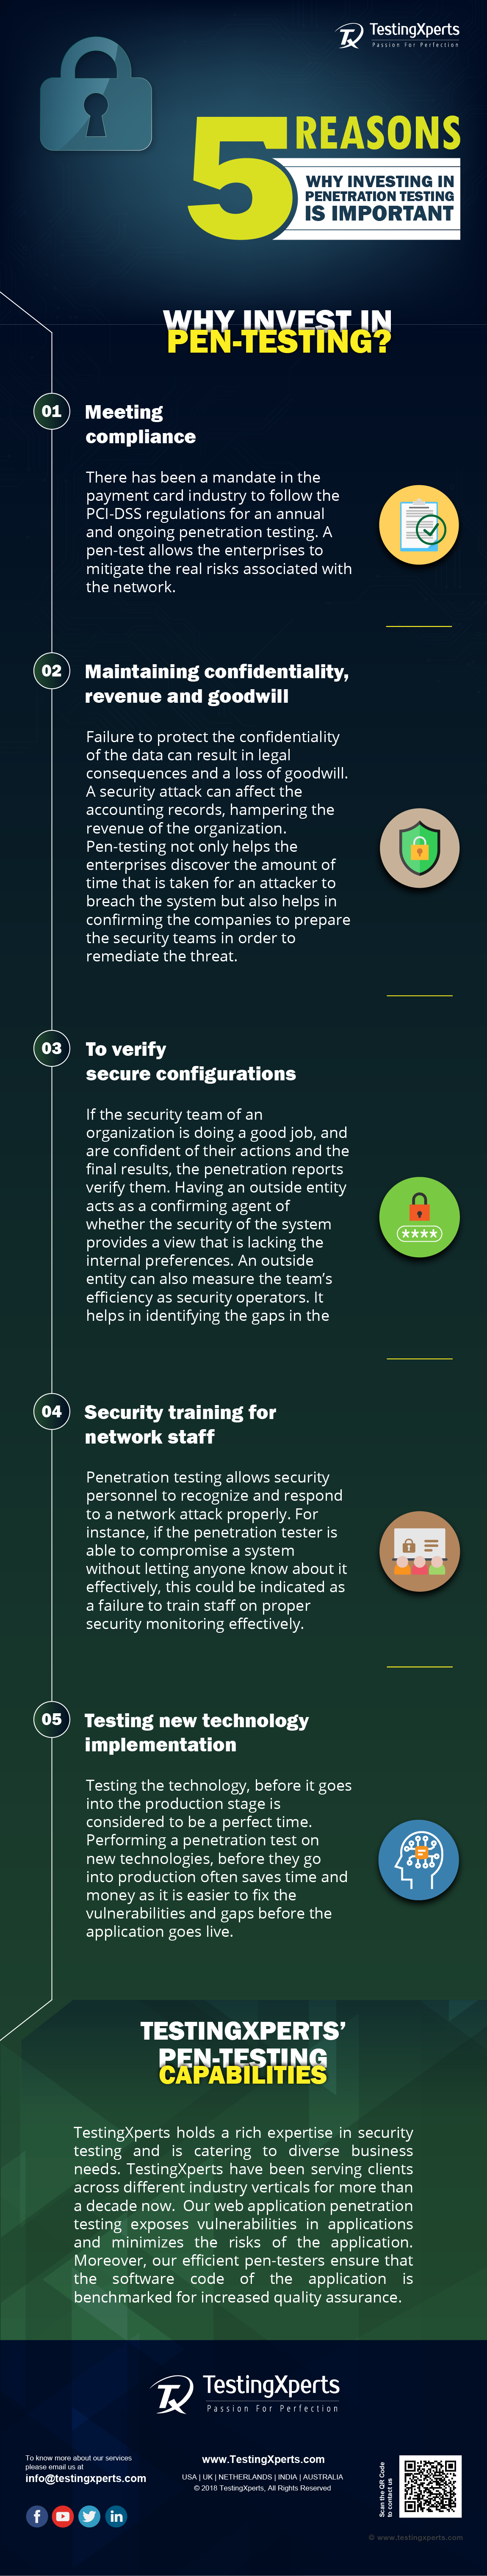 5-reasons-you-need-to-invest-in-penetration-testing-for-2018-infographic-01